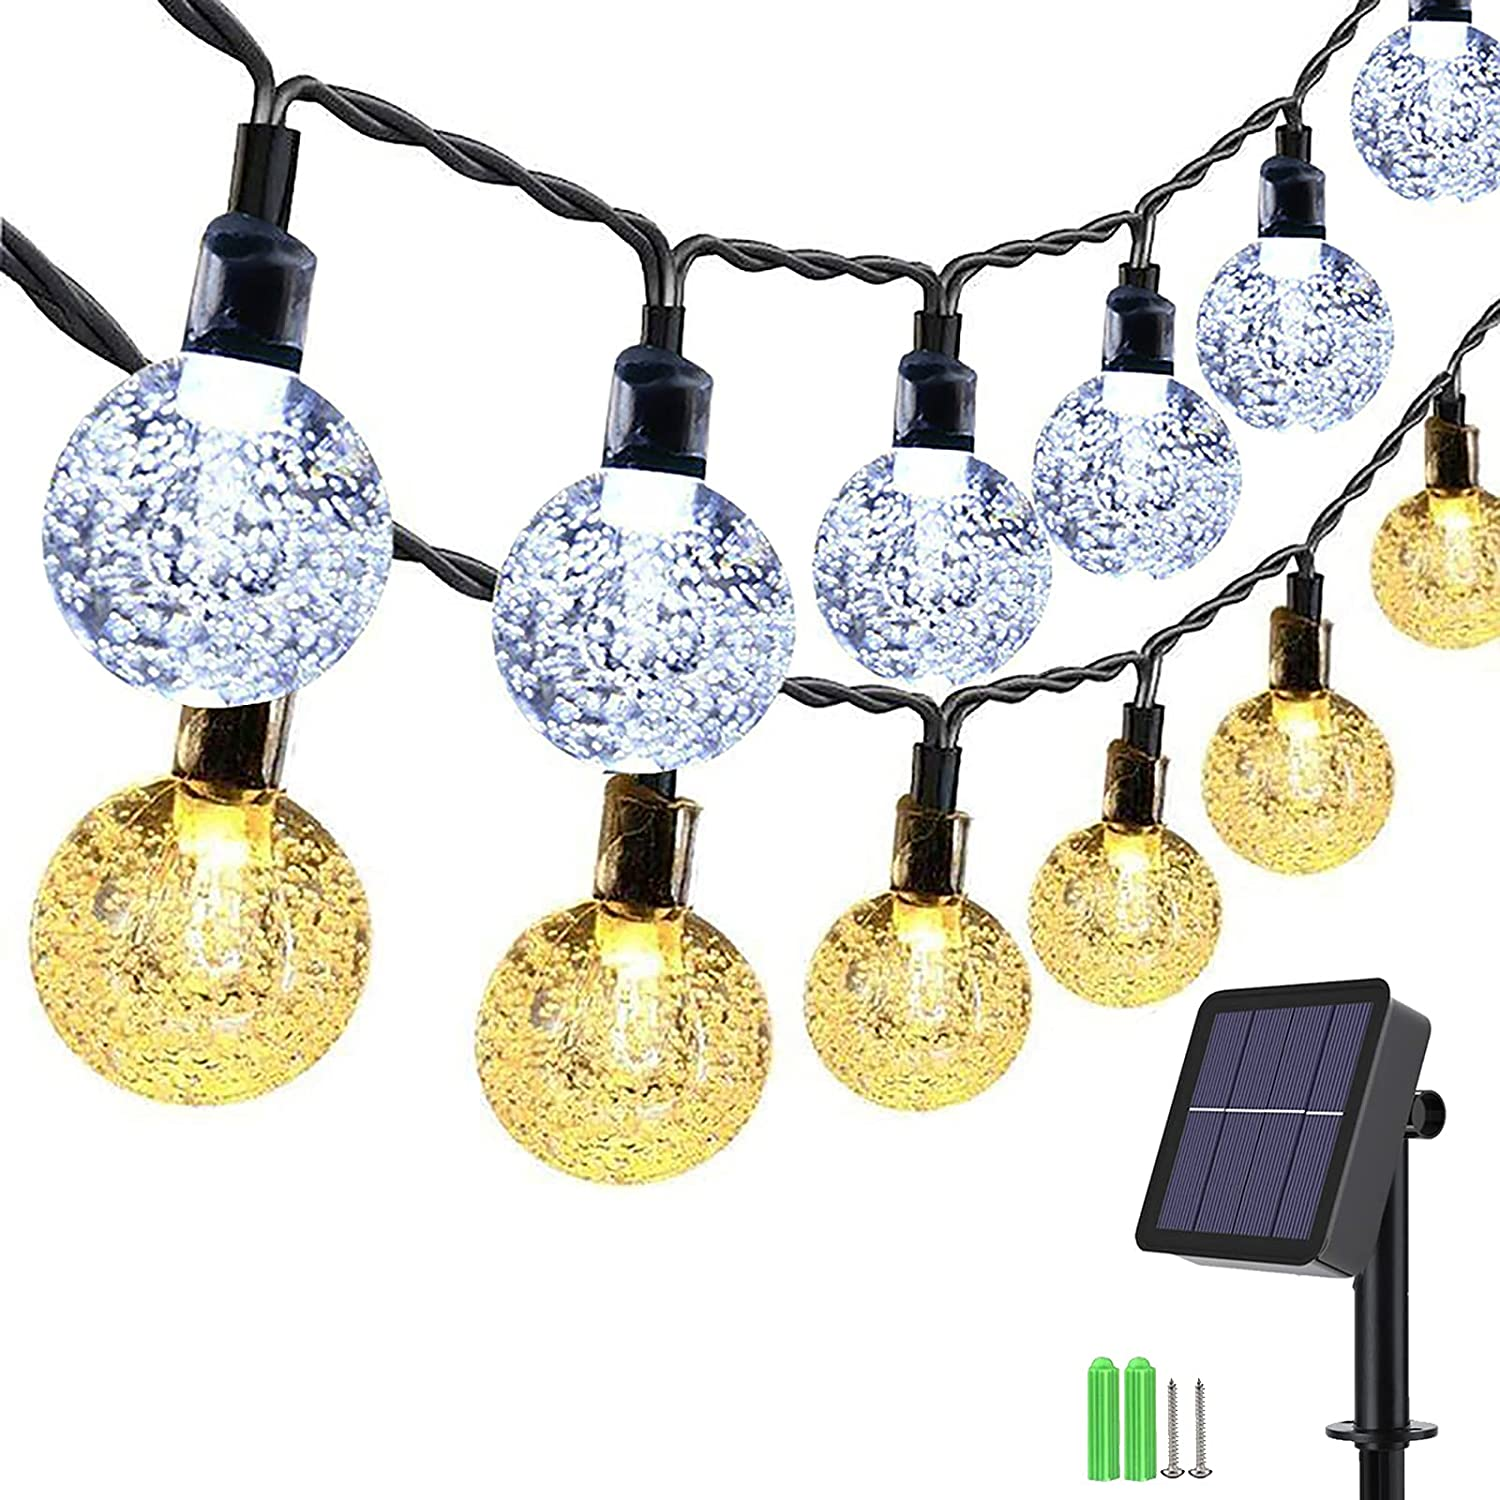 Solar Outdoor String Lights, 35.6ft 60 LED 2 in 1 Color Changing Crystal Globe Lights with 11 Lighting Modes, Waterproof Solar Patio Lights for Garden, Gazebo, Yard, Patio Decor (Warm White & White)